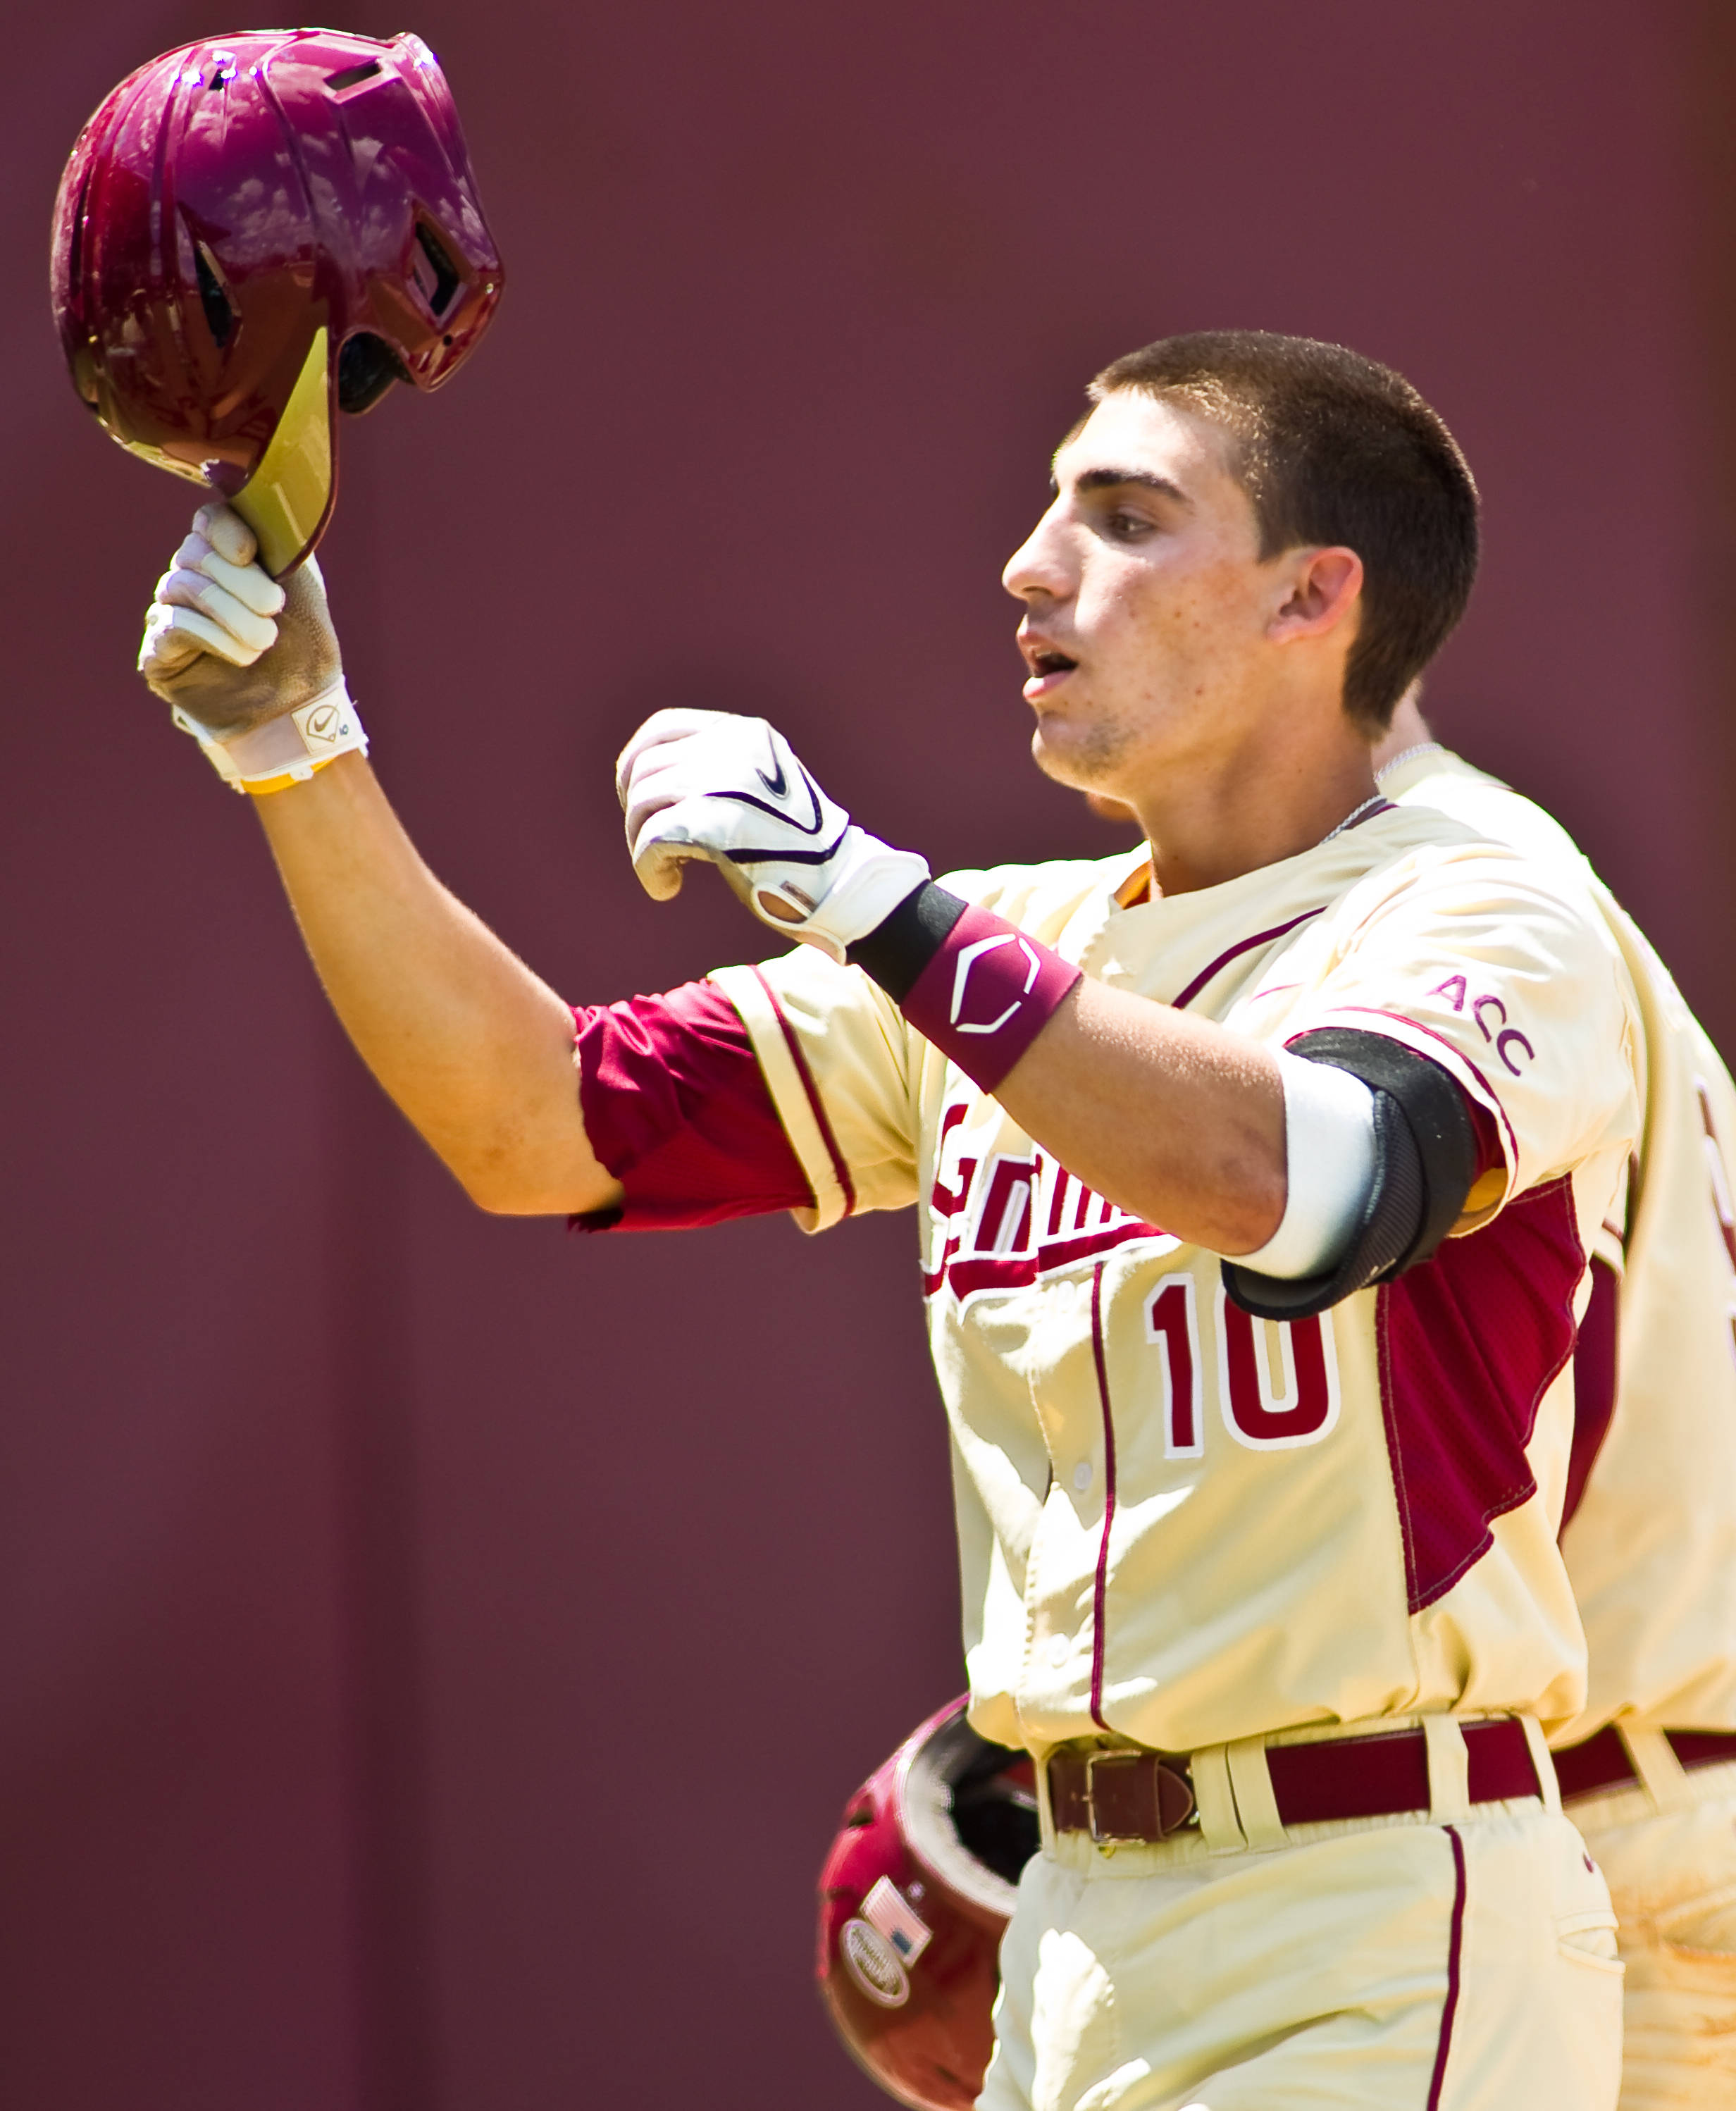 Justin Gonzalez celebrates after hitting his second grand slam of the season in the third inning.